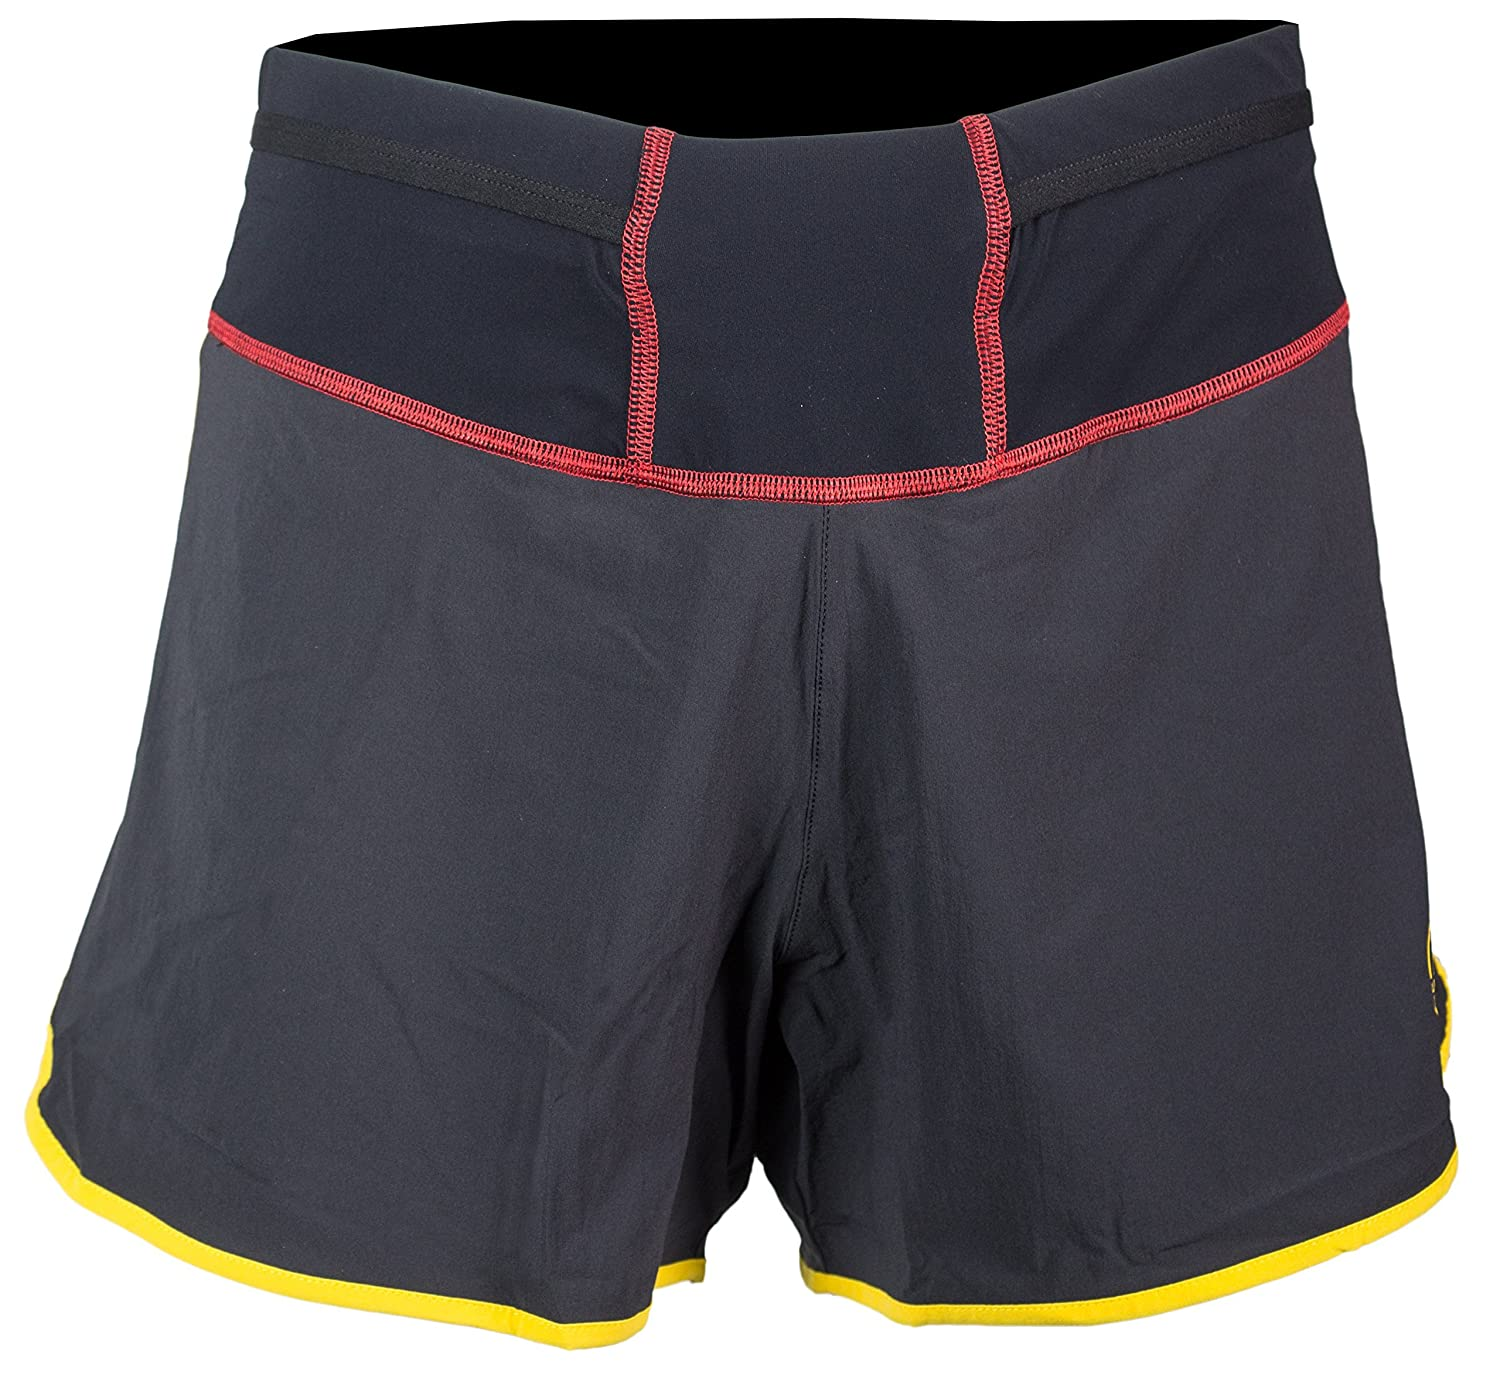 La SportivaメンズRush Running Short – Trail running shortsメンズの4インチ XS ブラック B01IRDJCXC